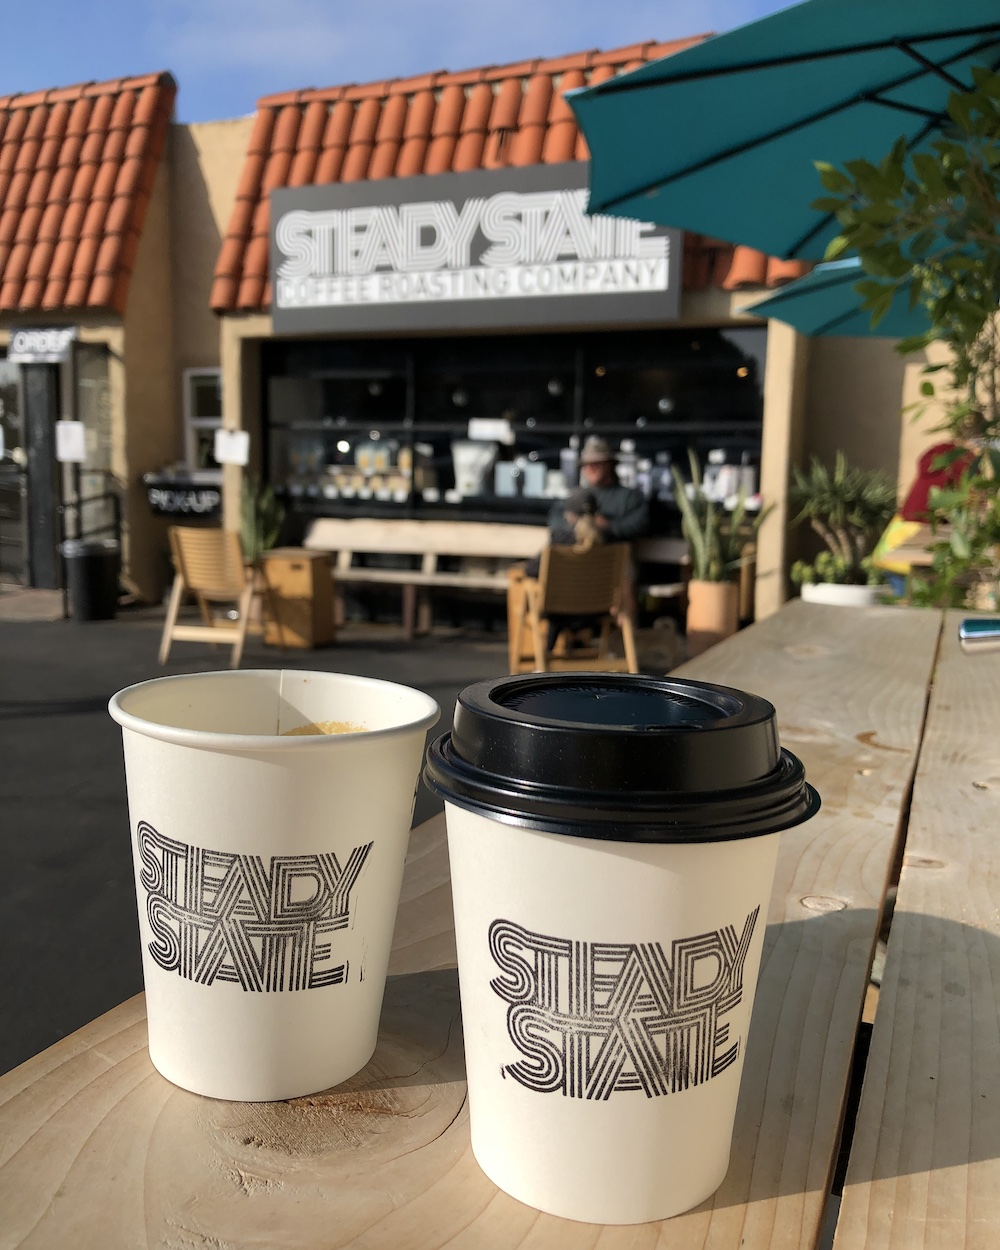 two cups of to go coffee at steady state roasting co